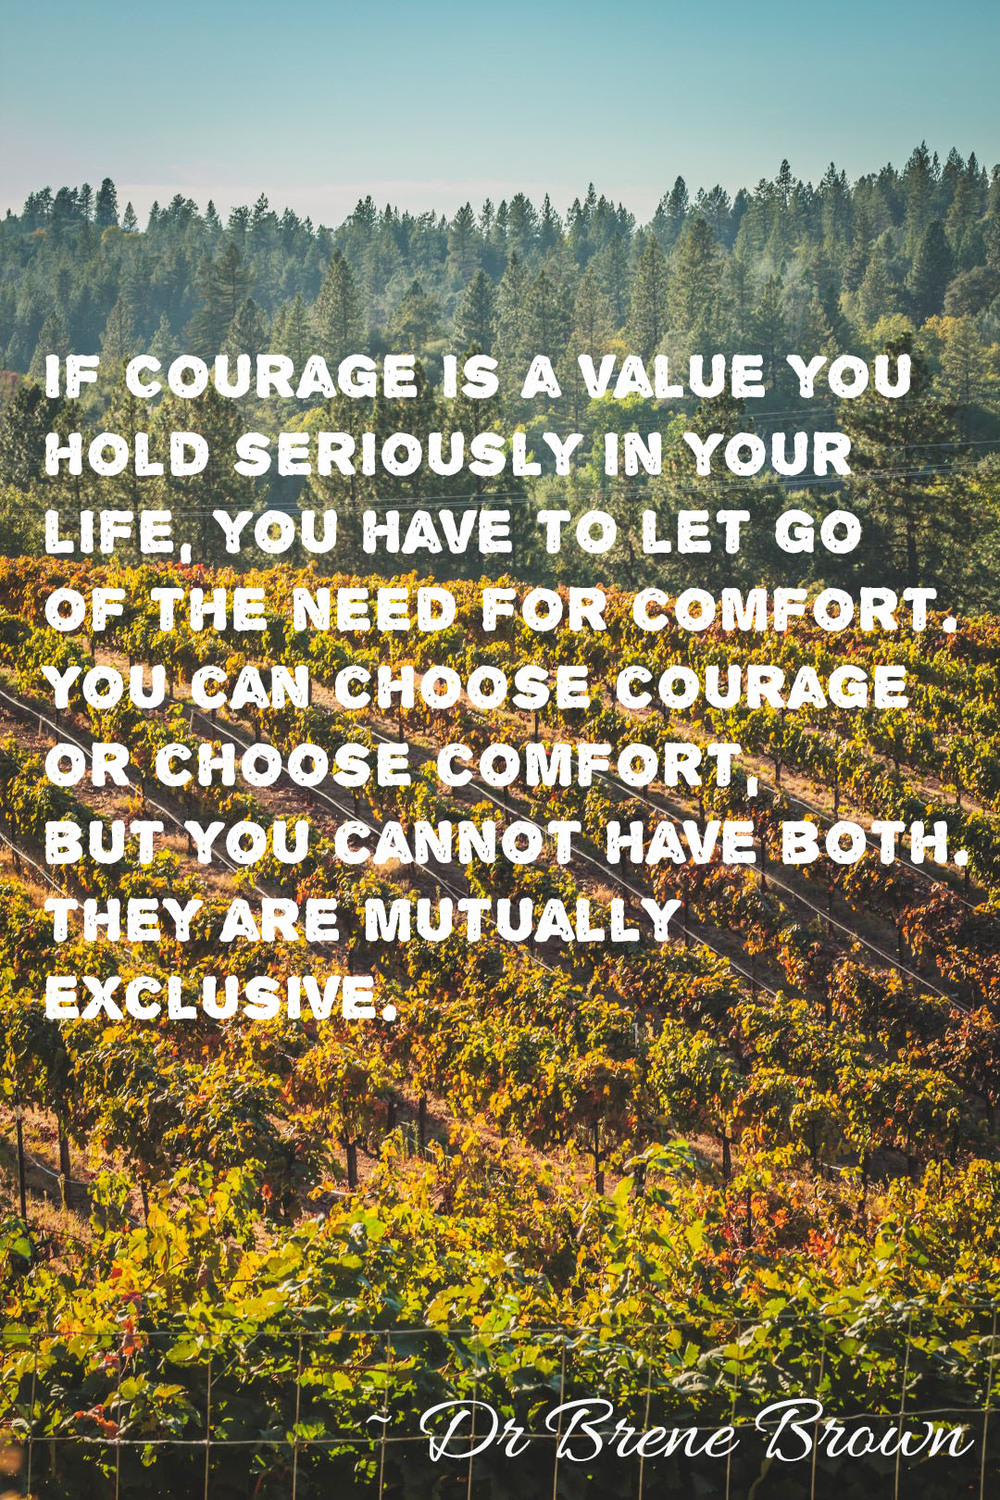 If courage is a value.jpg